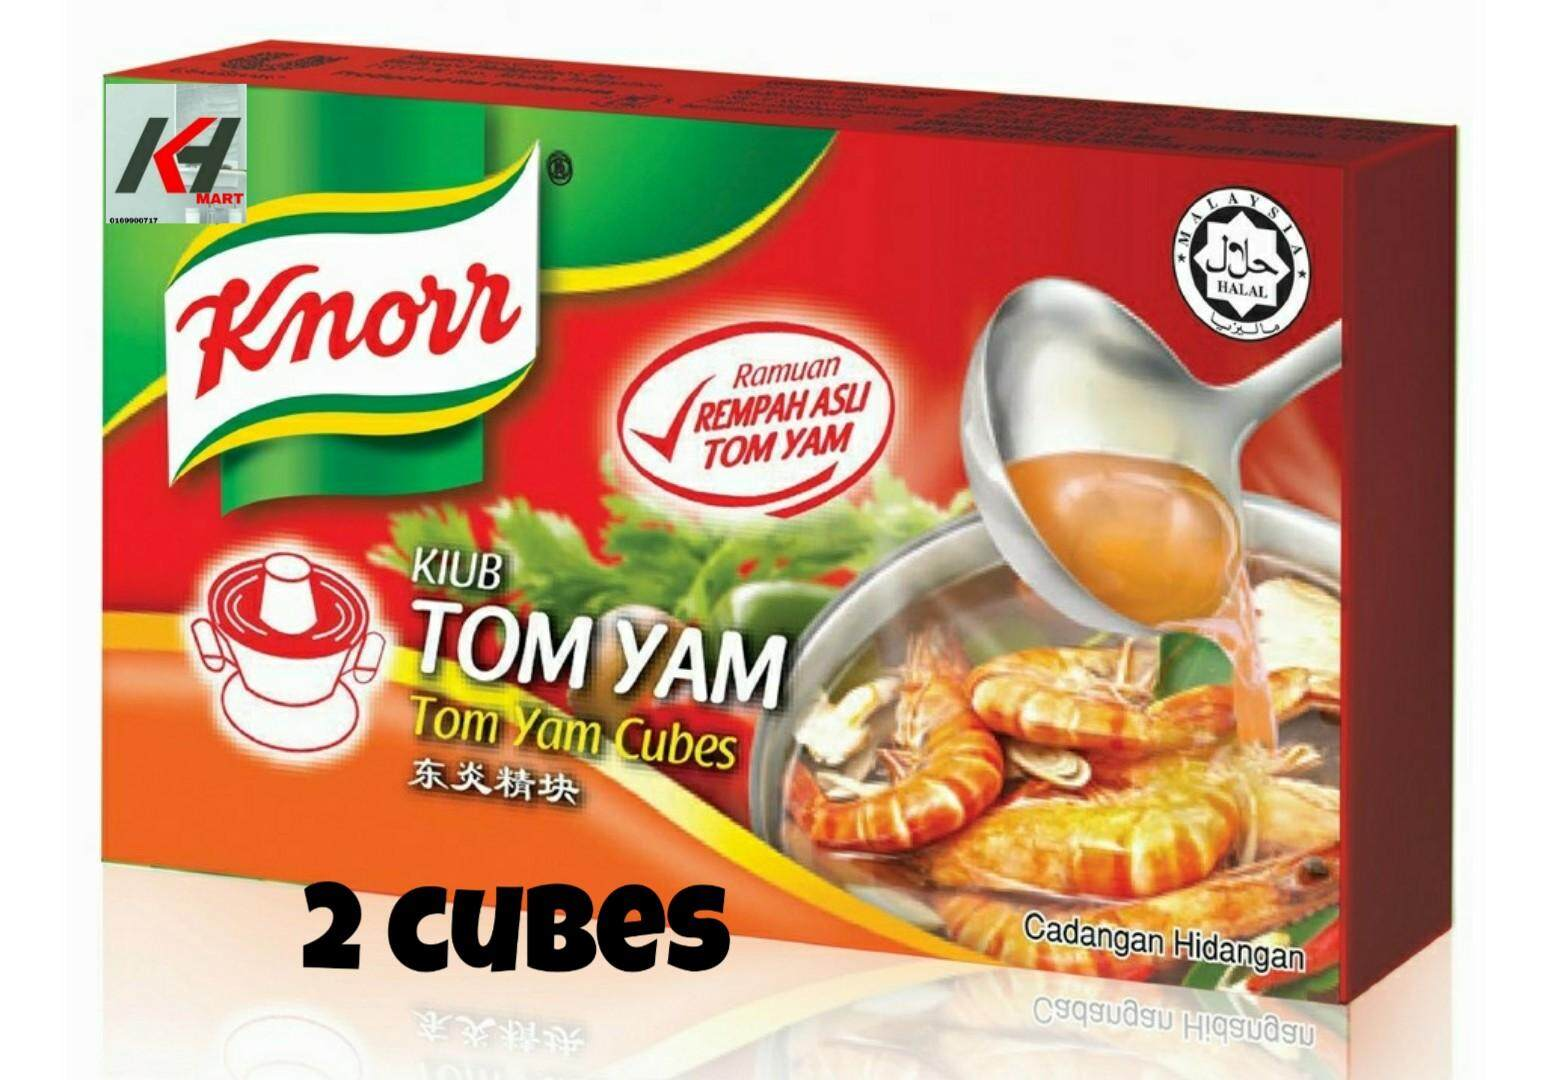 KNORR CUBE TOM YAM 20G (2 CUBES) READY STOCK